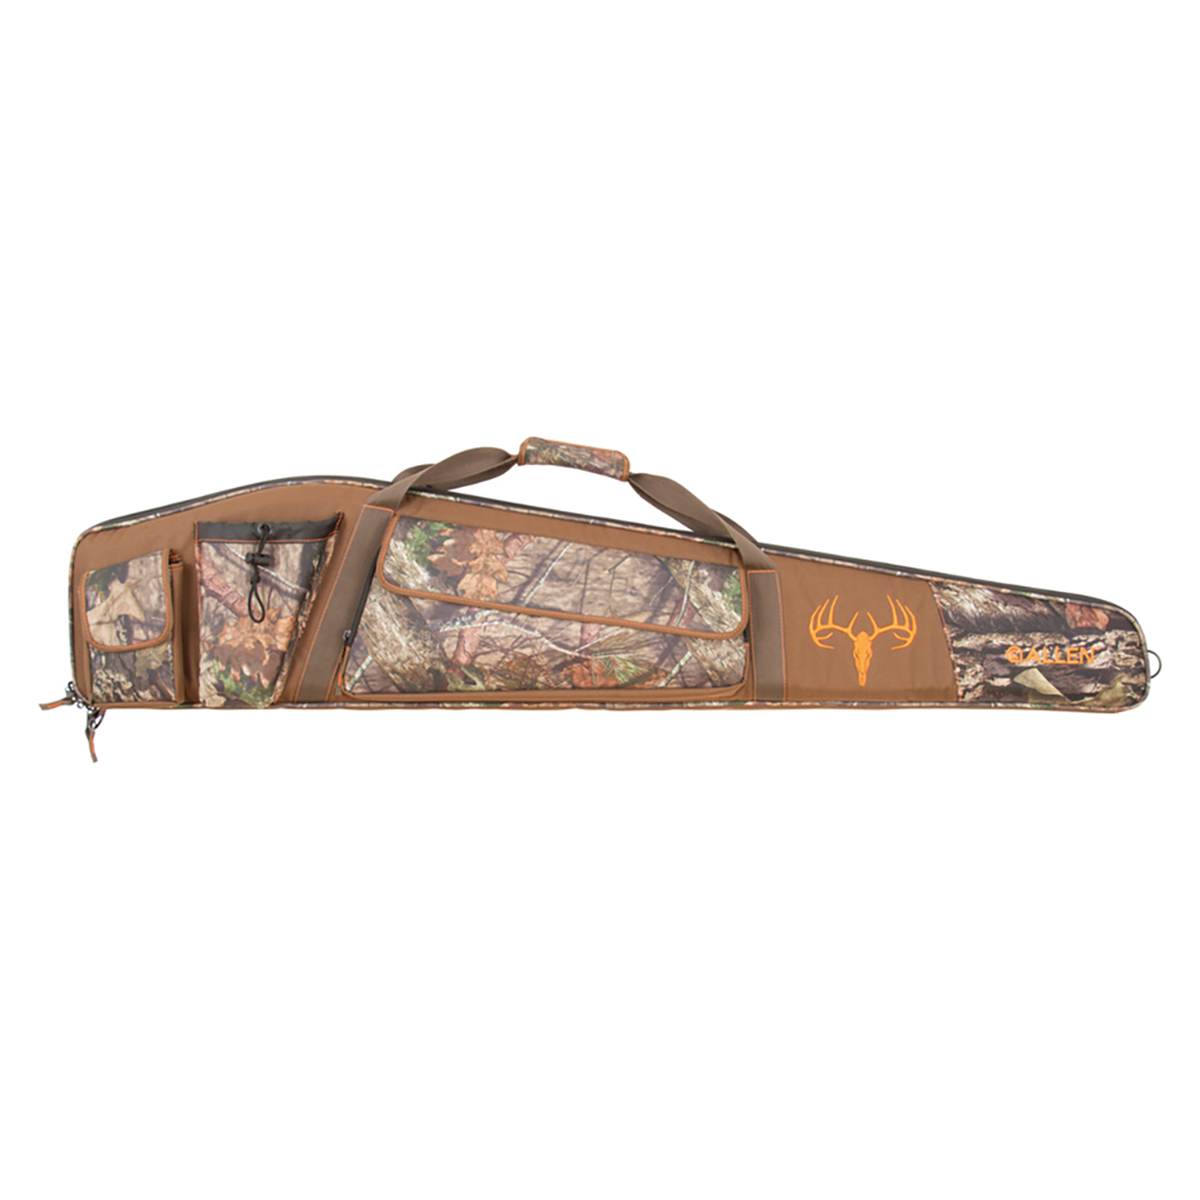 Allen Gear Fit Pursuit Bruiser 48″ Deer Hunting Rifle Case